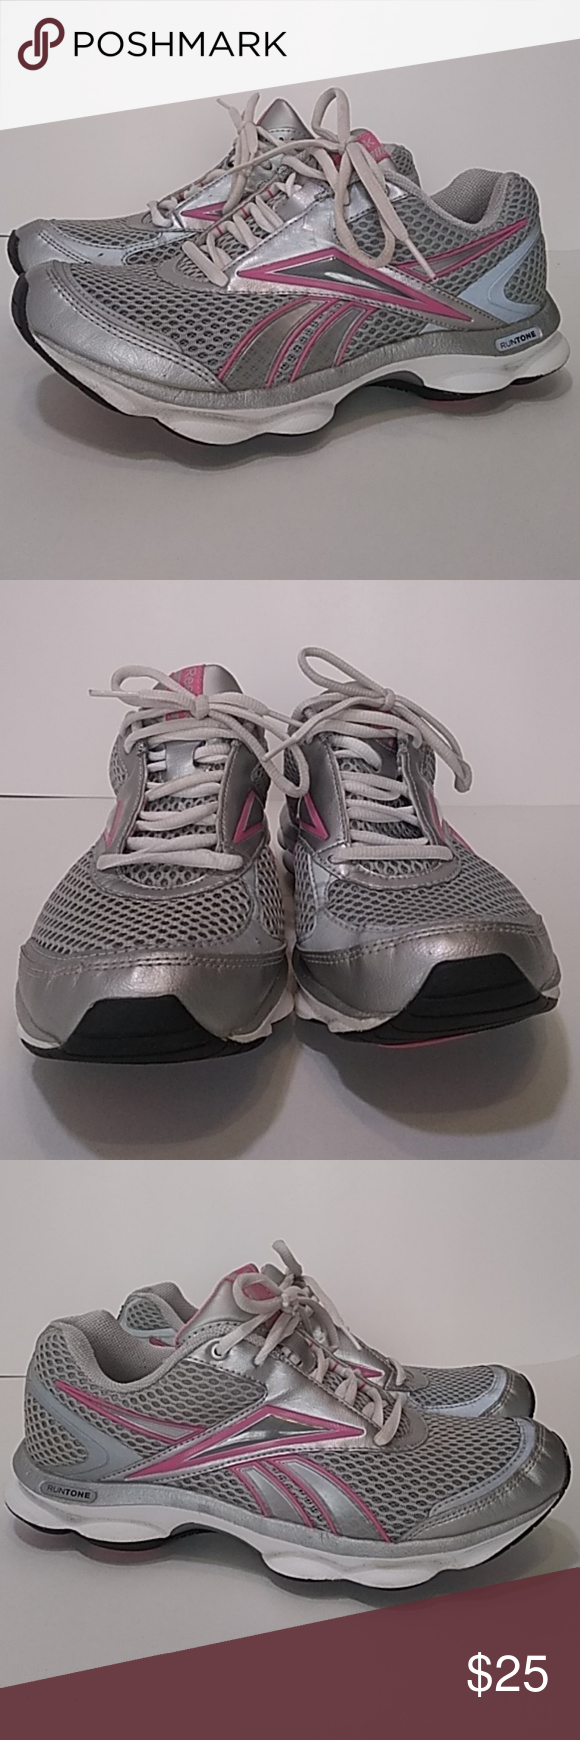 54fe43f2c4f Reebok Women s Runtone Grey Pink Running Shoes Pre-owned some light wear .  Small hole in top back area around ankle in one shoe. Small crack in  leather on ...